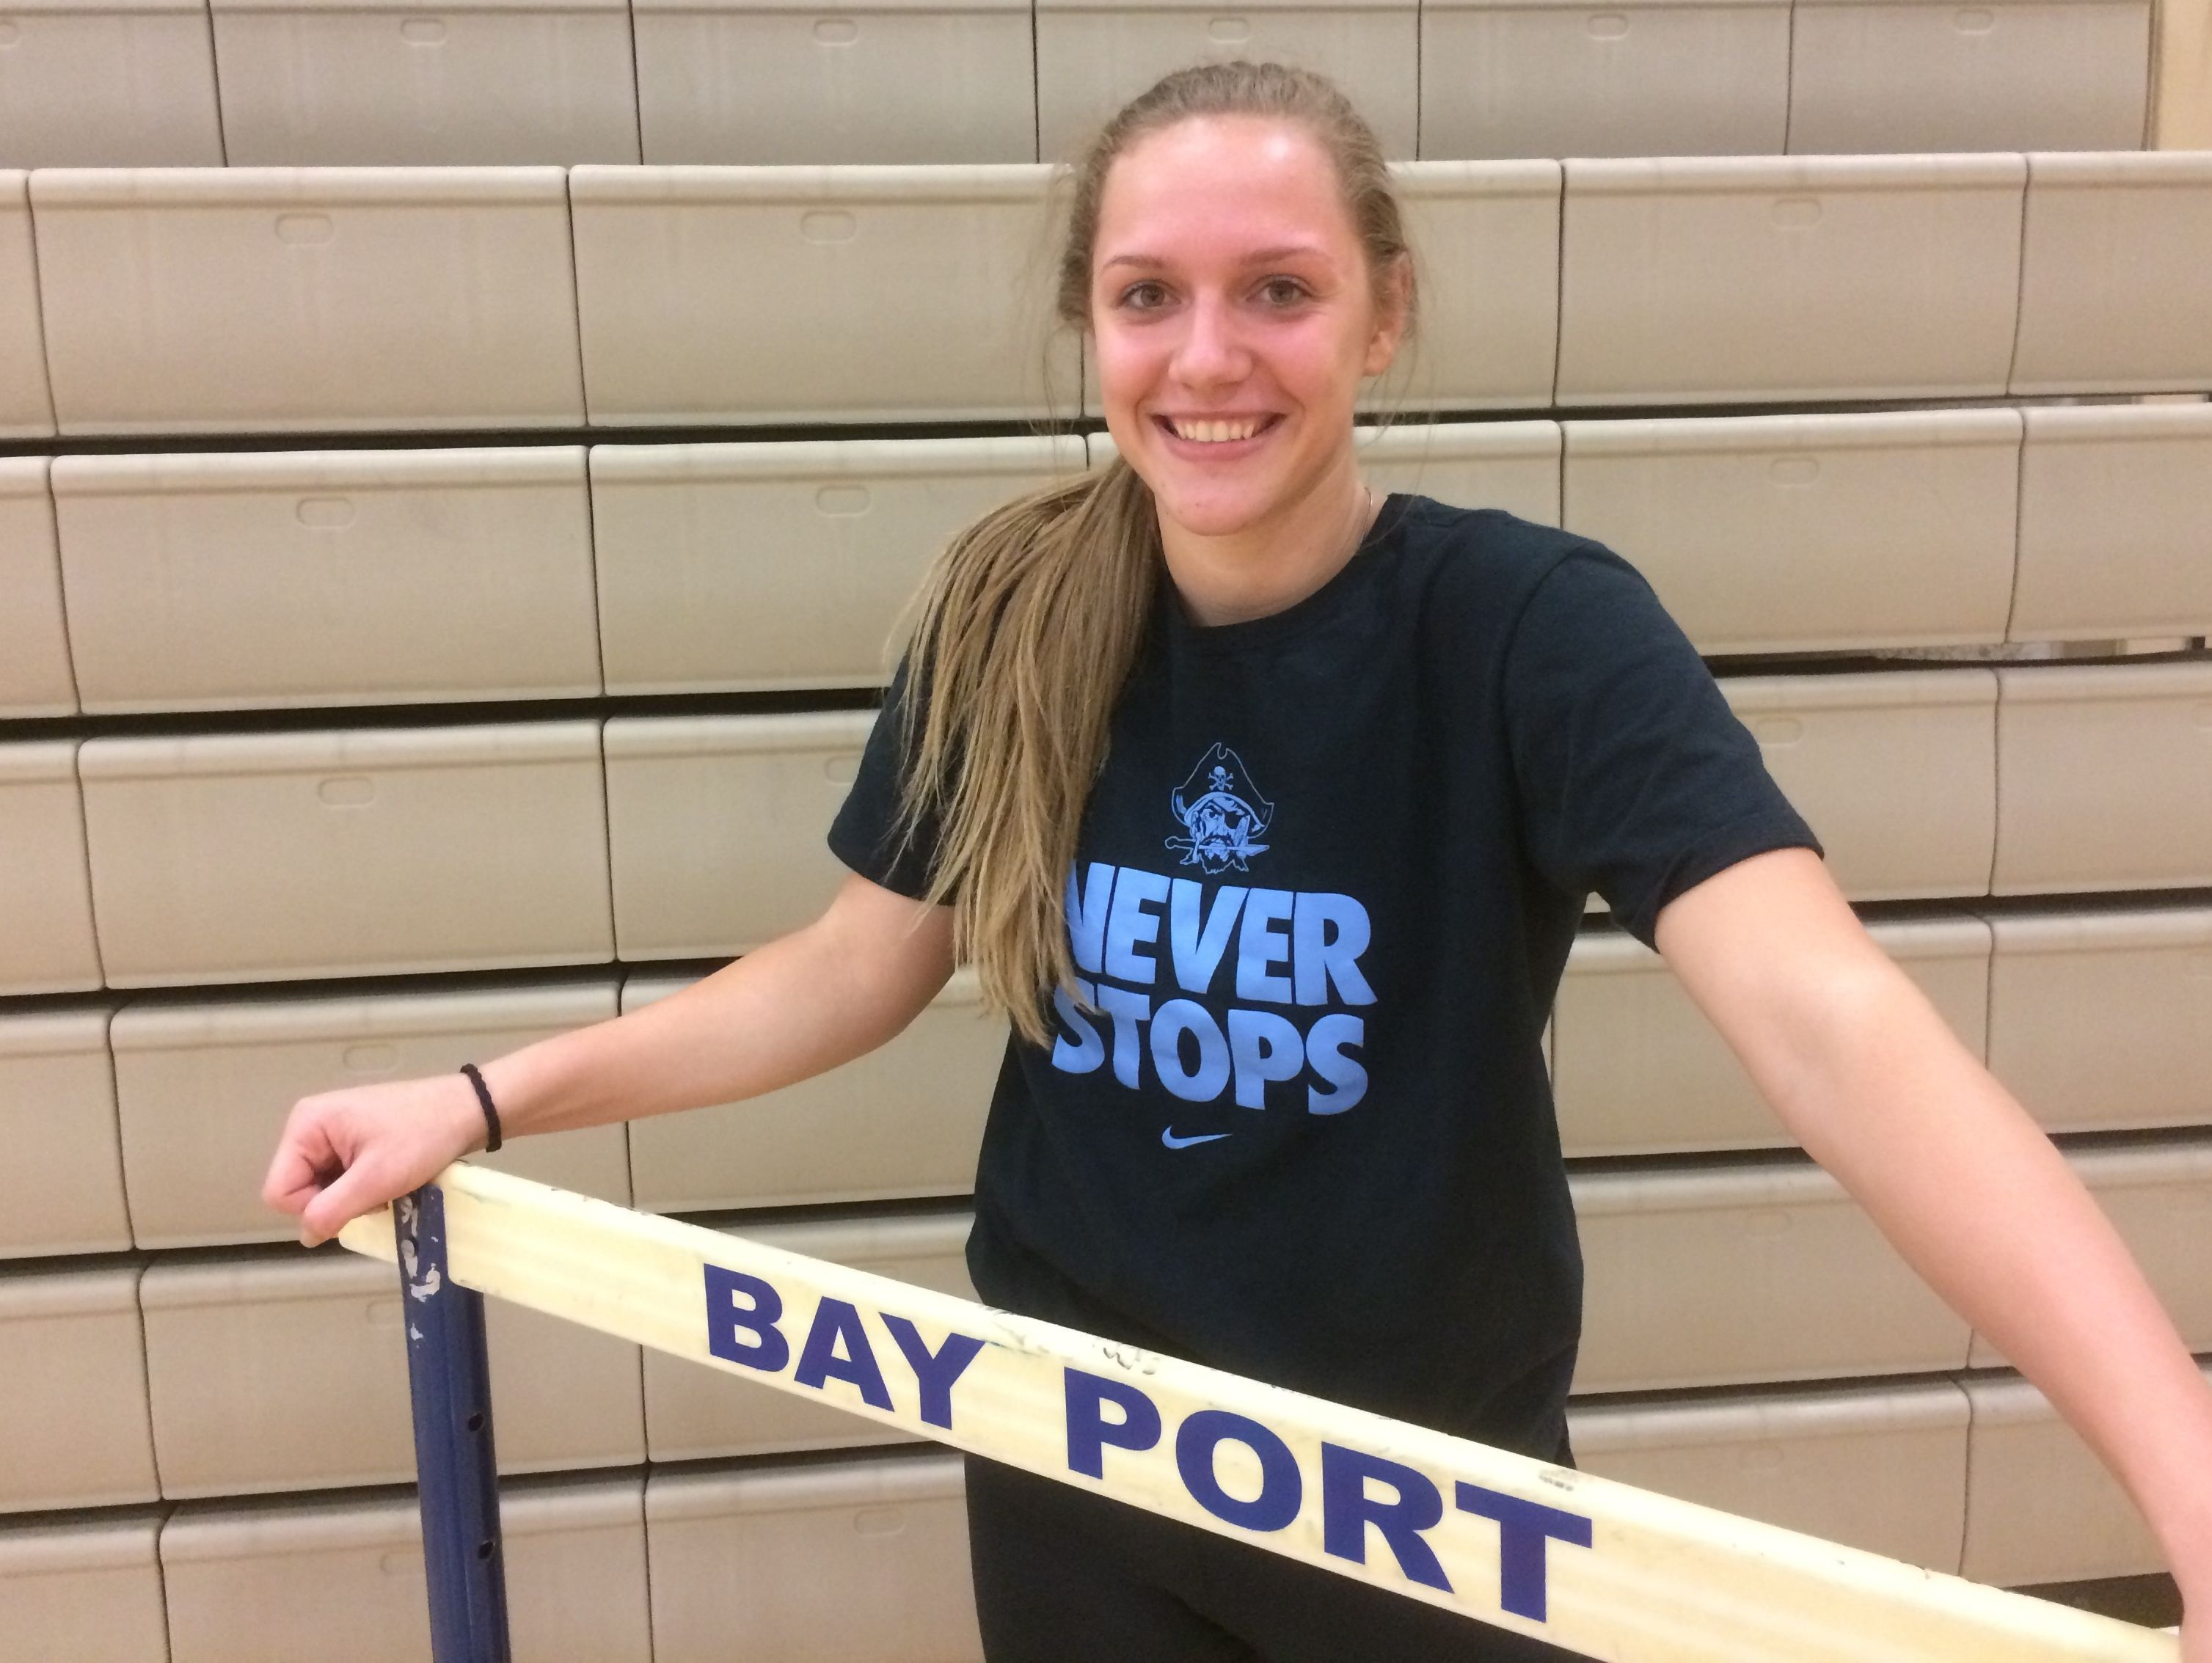 Bay Port senior Taylor Arbour has played multiple sports throughout high school and will enroll at the United States Naval Academy.